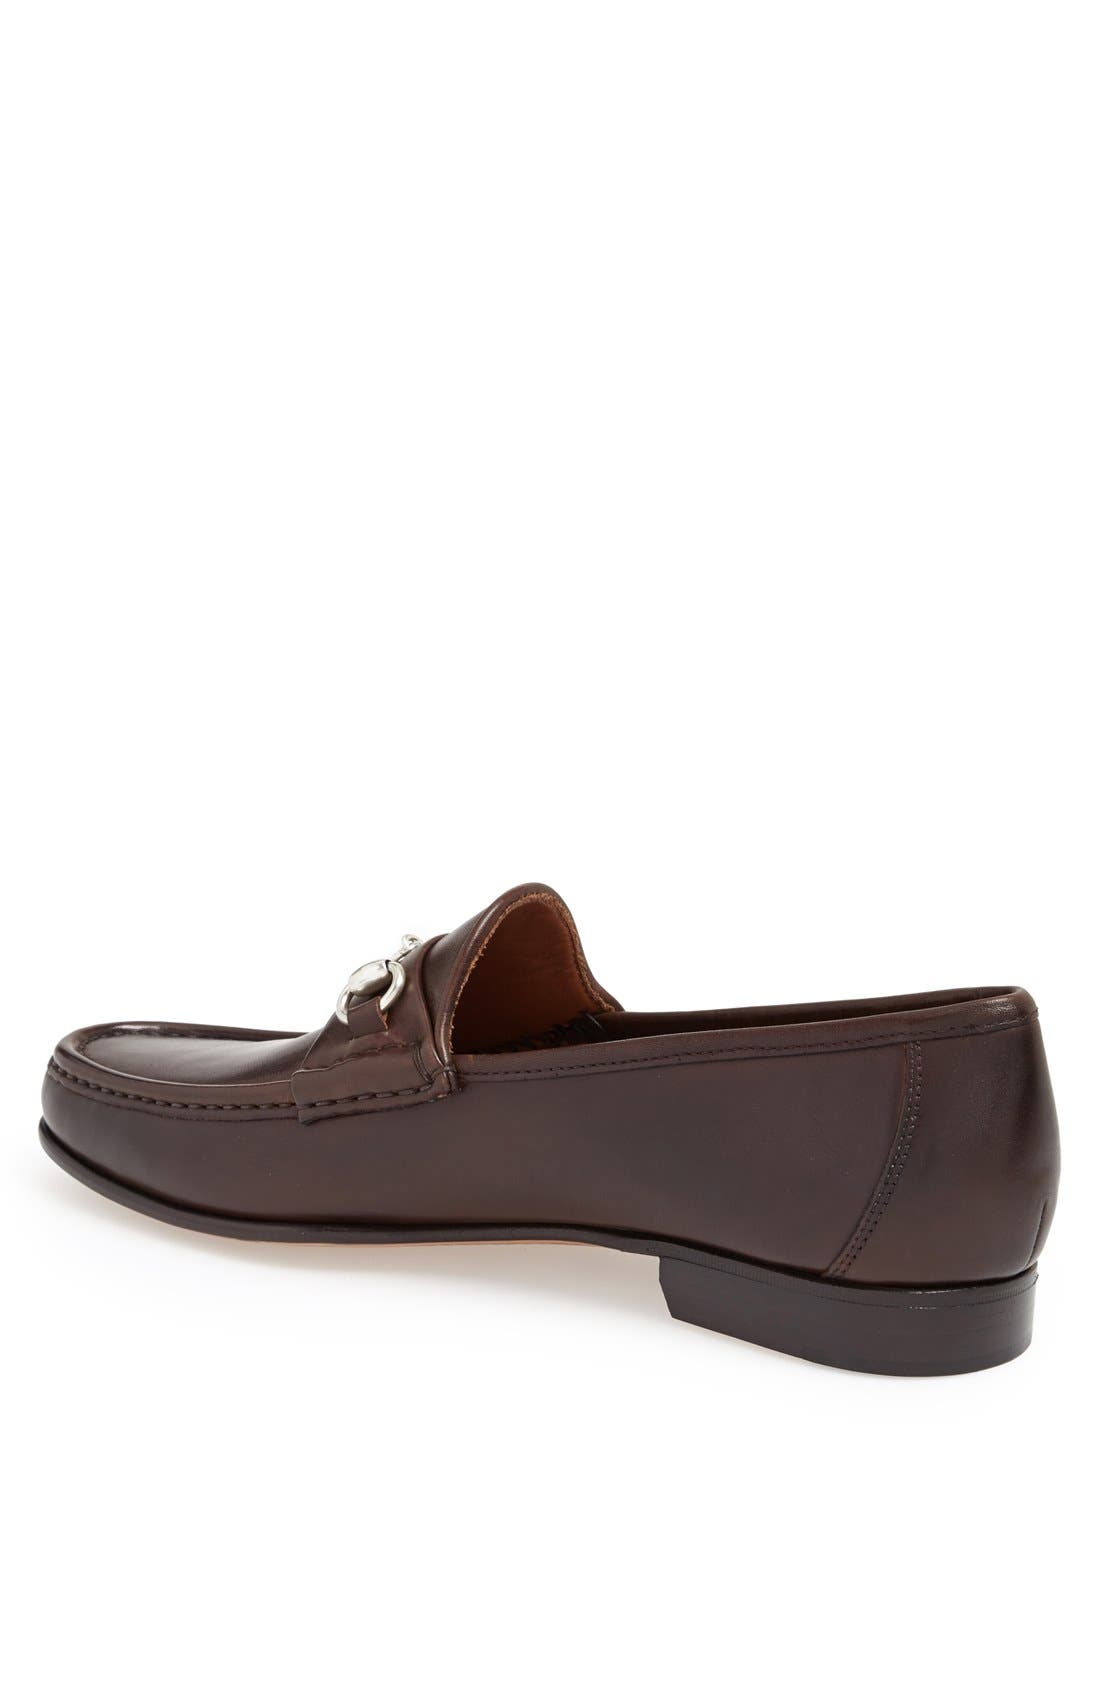 ALLEN EDMONDS, Verona II Bit Loafer, Alternate thumbnail 2, color, BROWN/ BROWN